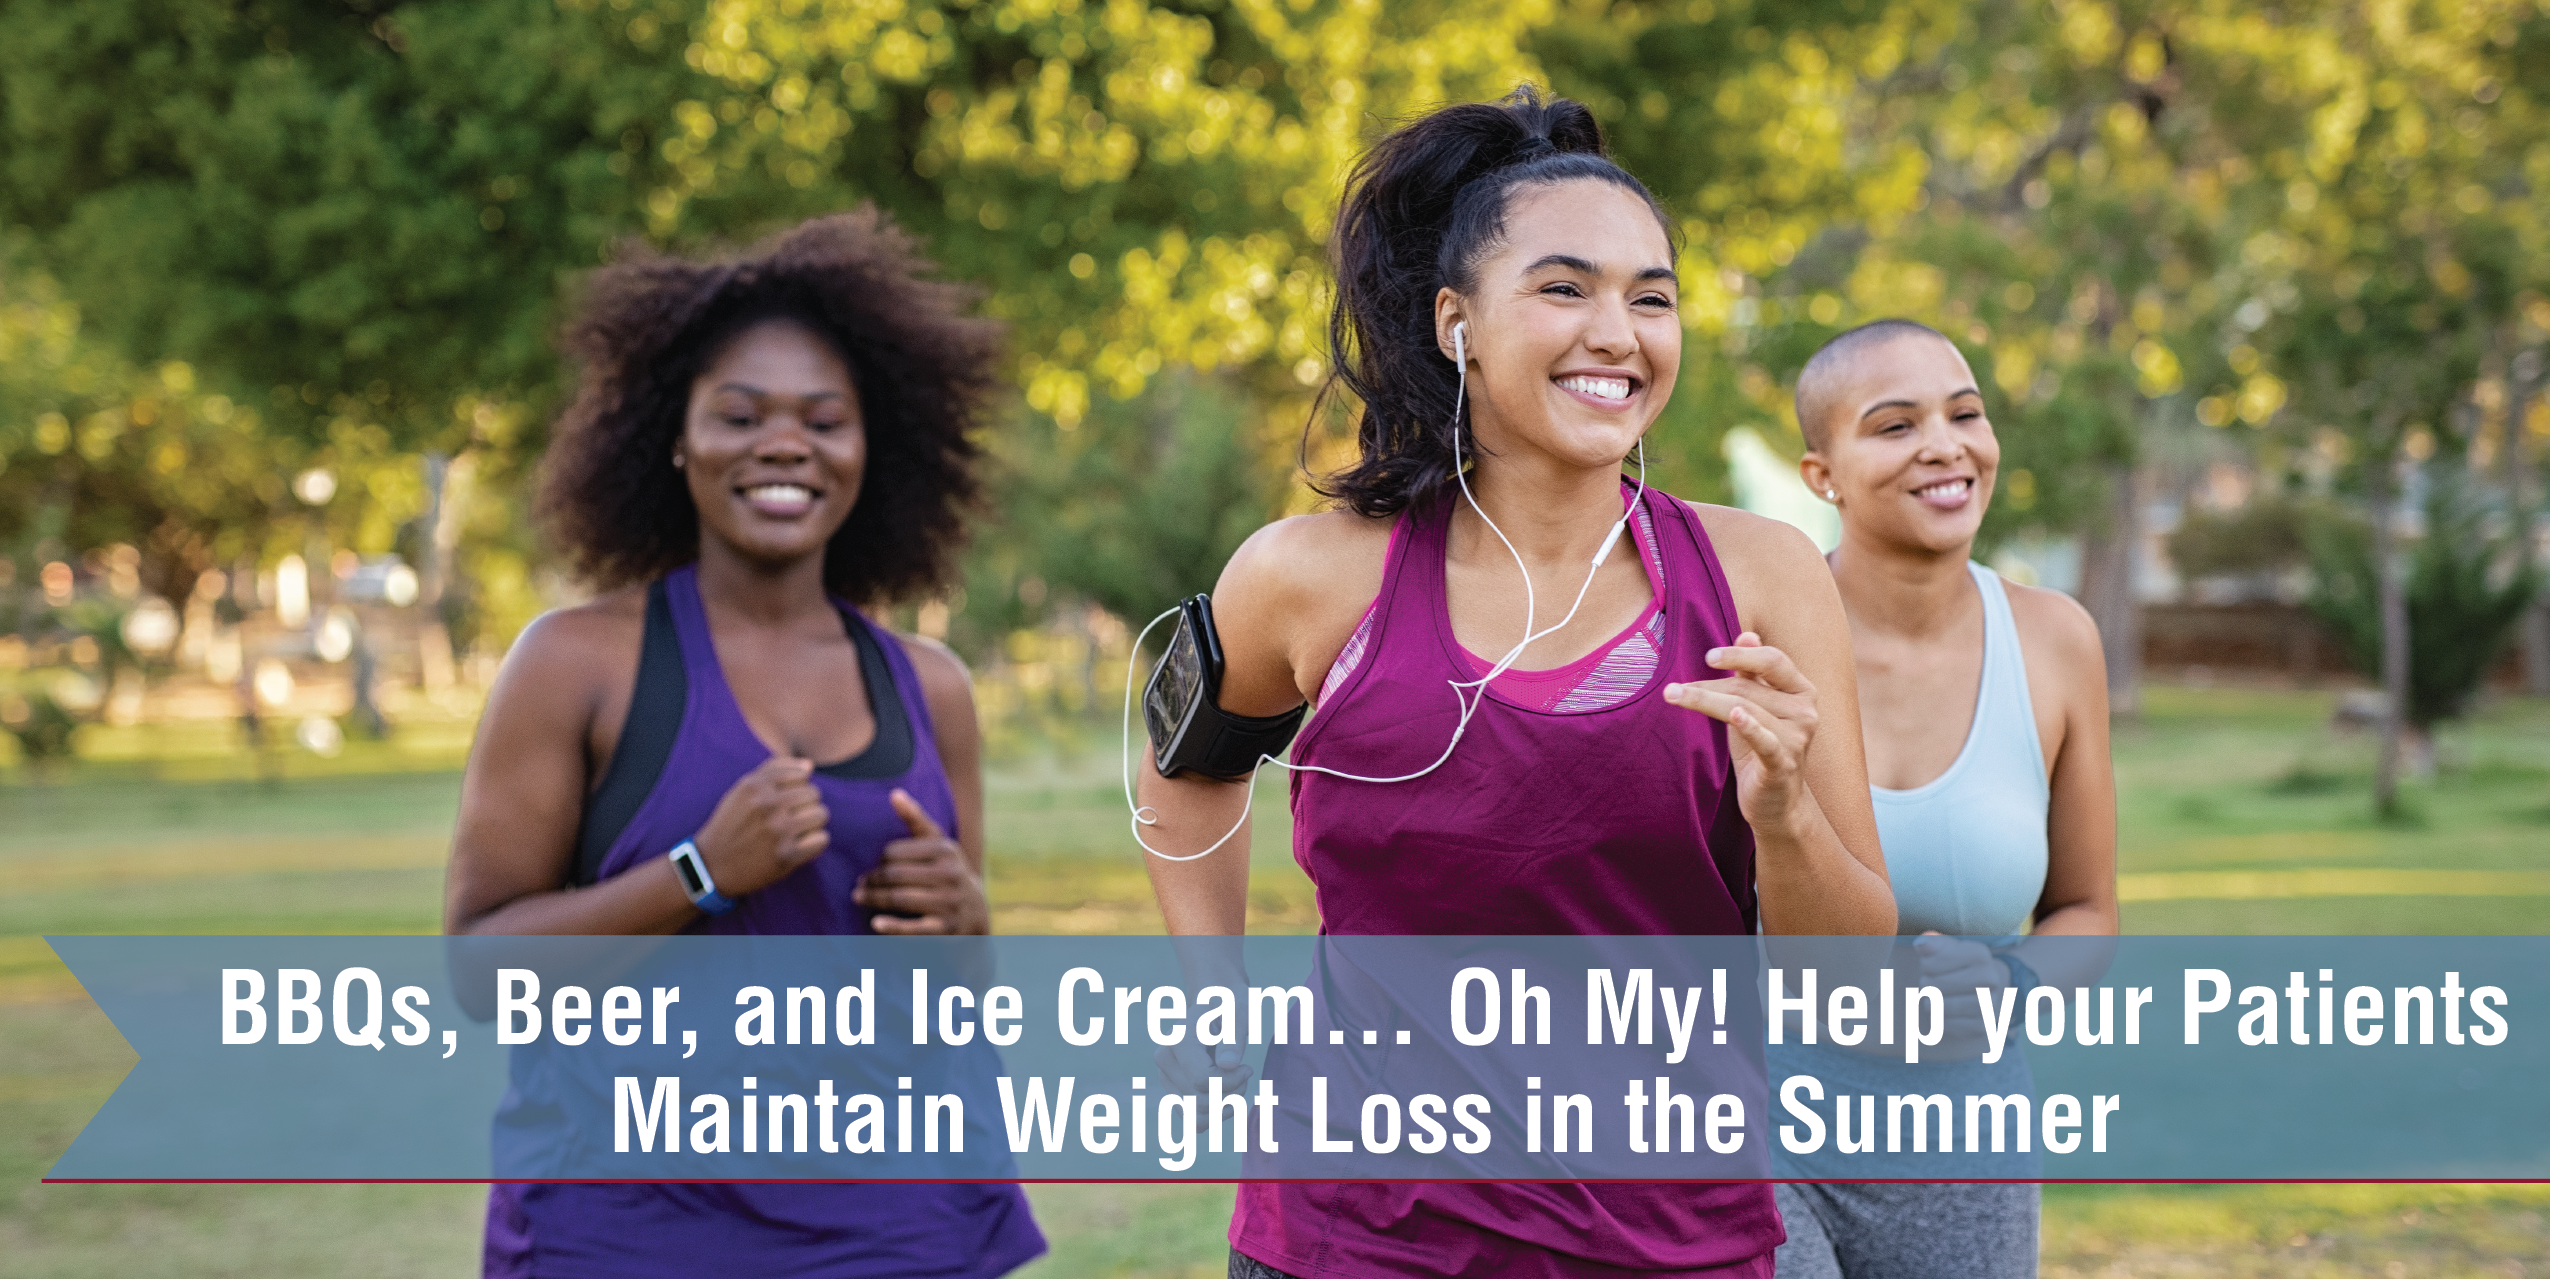 BBQs, Beer, And Ice Cream… Oh My! Help Your Patients Maintain Weight Loss In The Summer